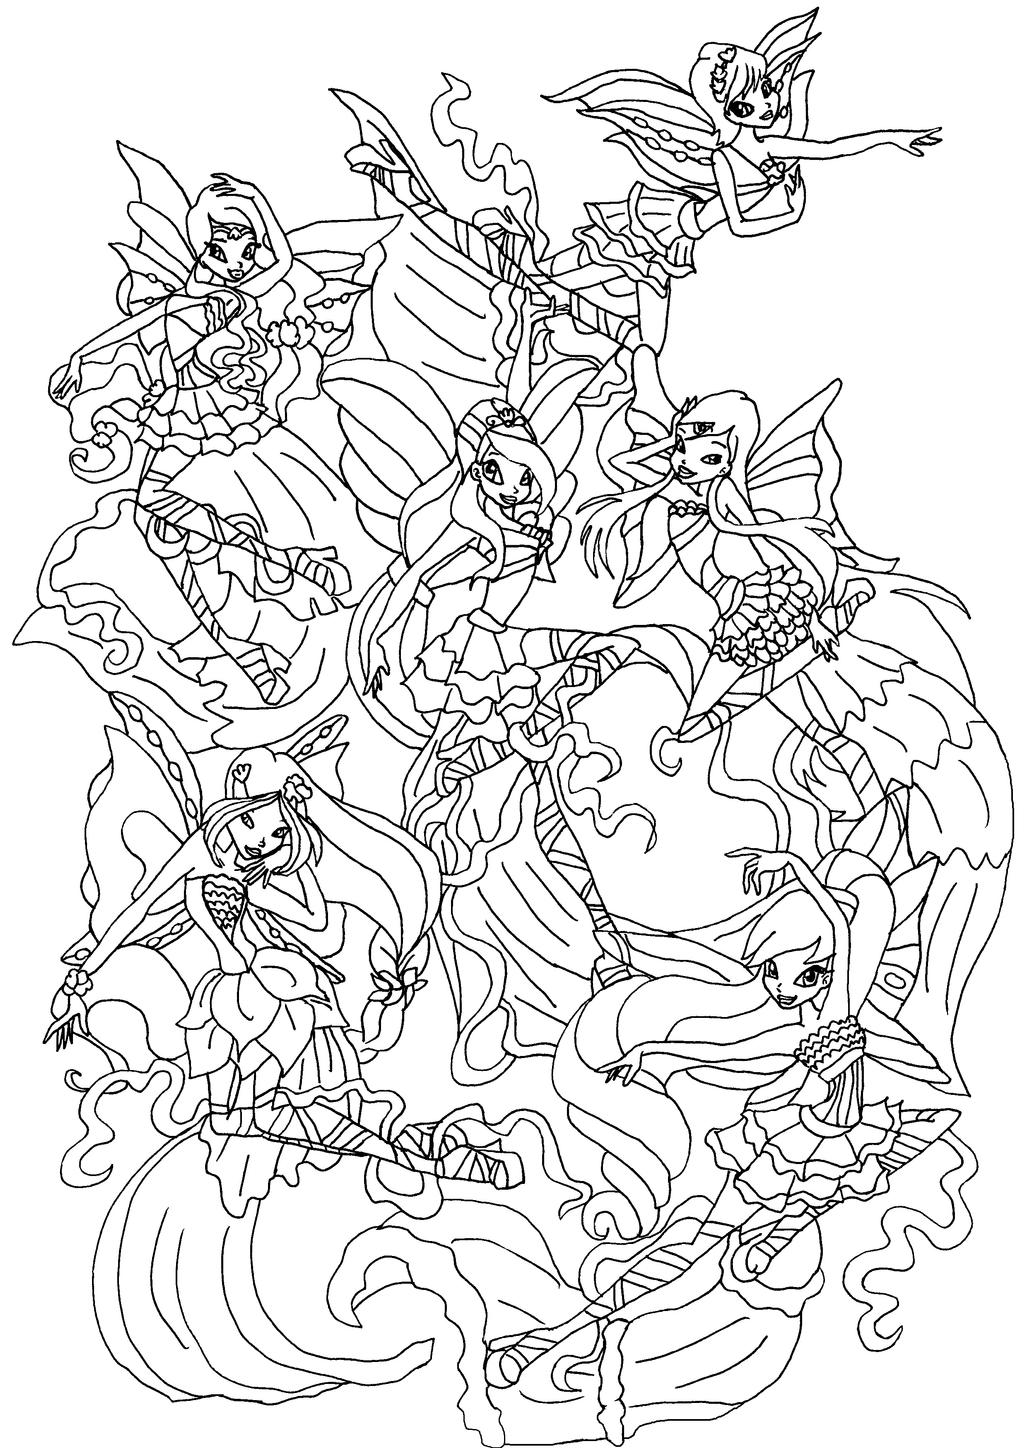 winx coloring page free printable winx club coloring pages for kids page winx coloring